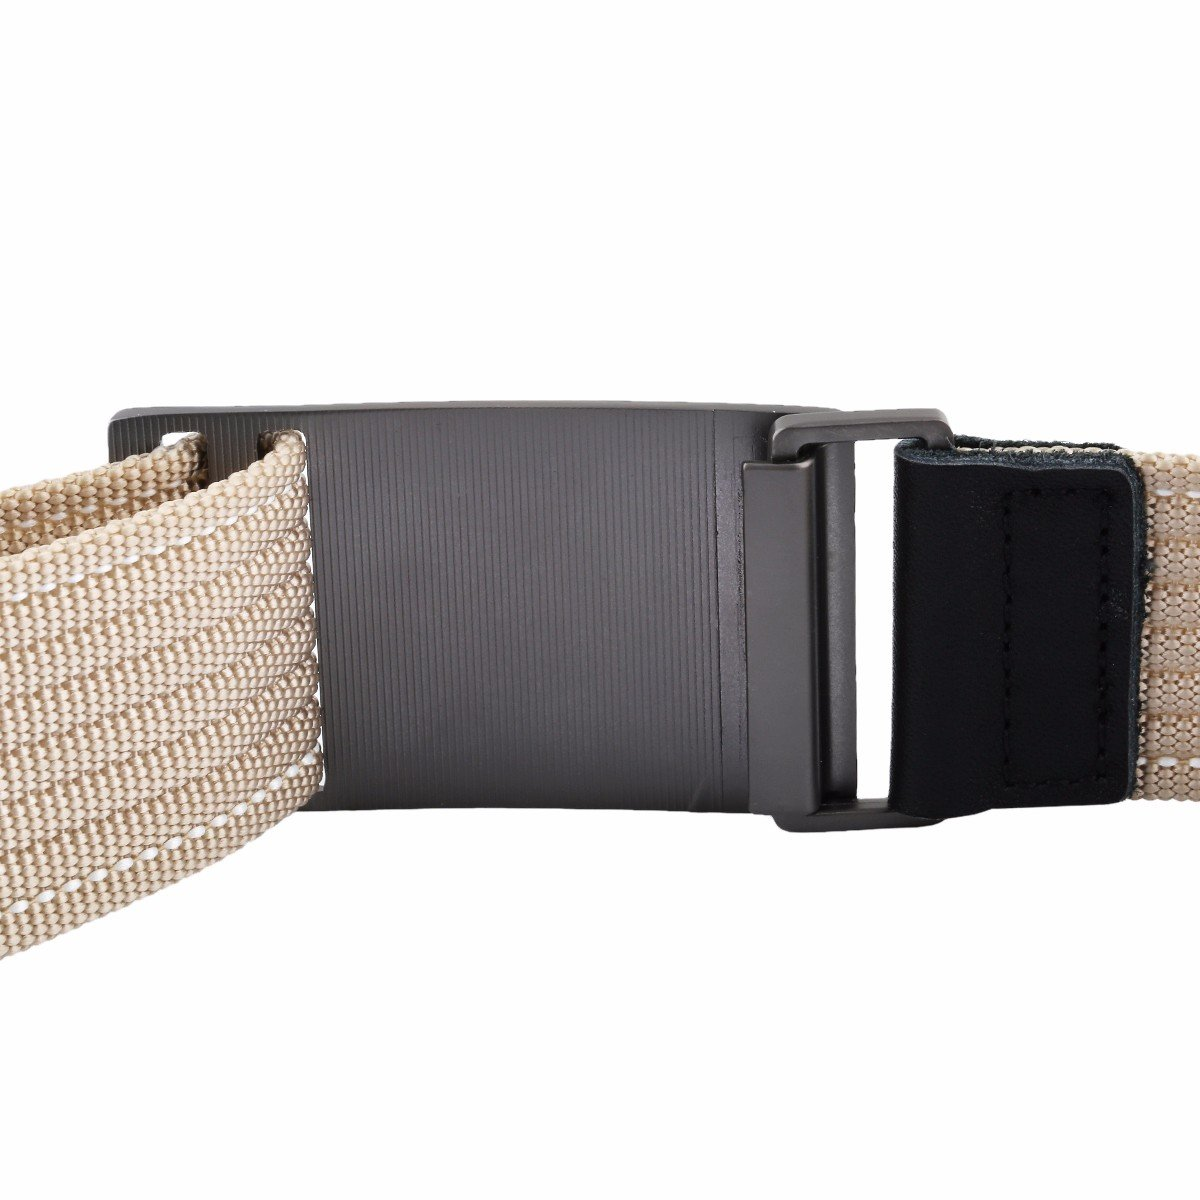 moonsix Nylon Belts for Men,Tactical Style military Army Web Outdoor Hiking Duty Belt